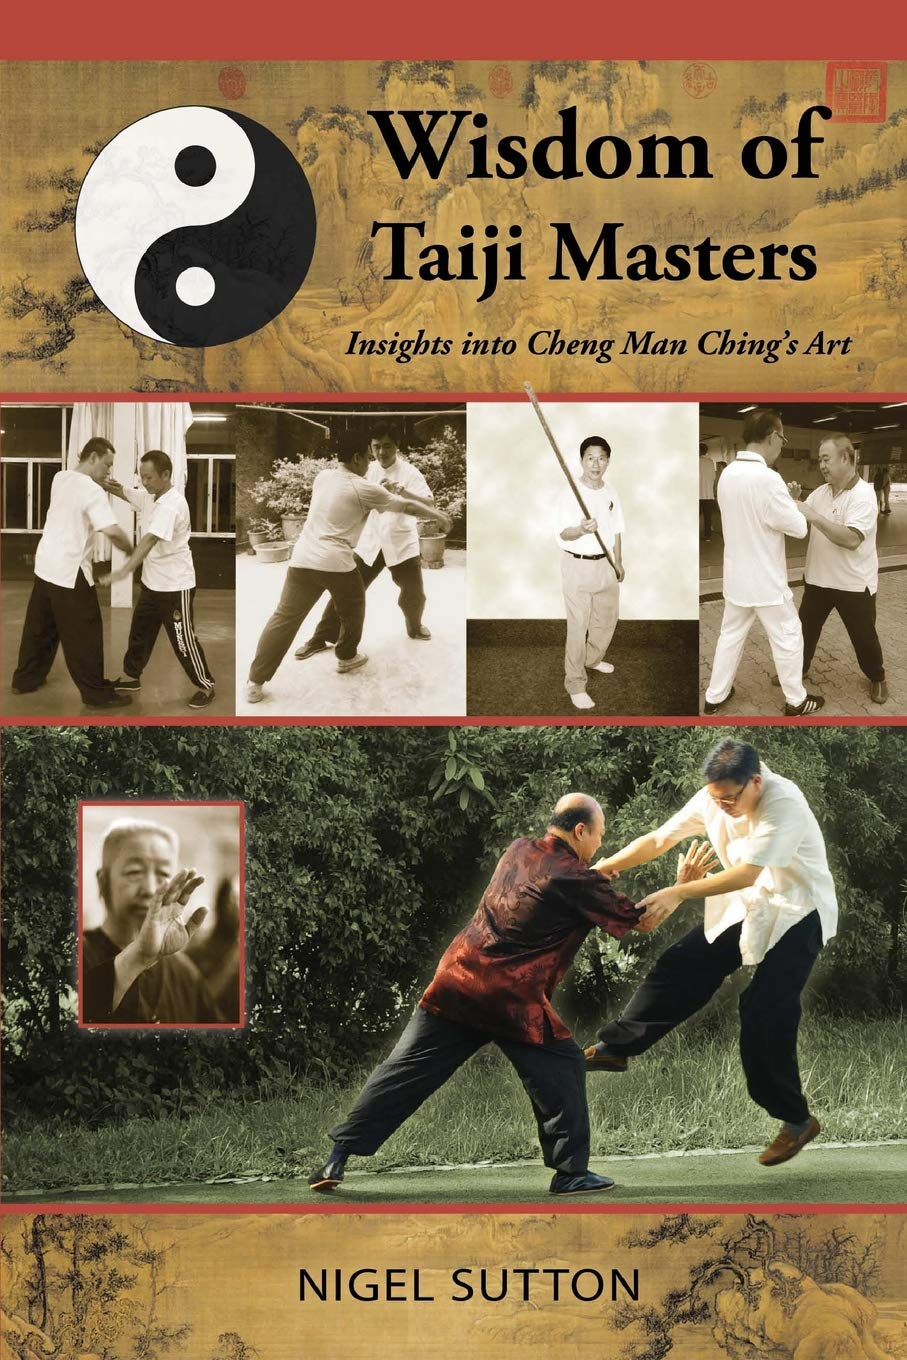 Wisdom of Taiji Masters: Insights into Cheng Man Ching's Art Text fb2 ebook